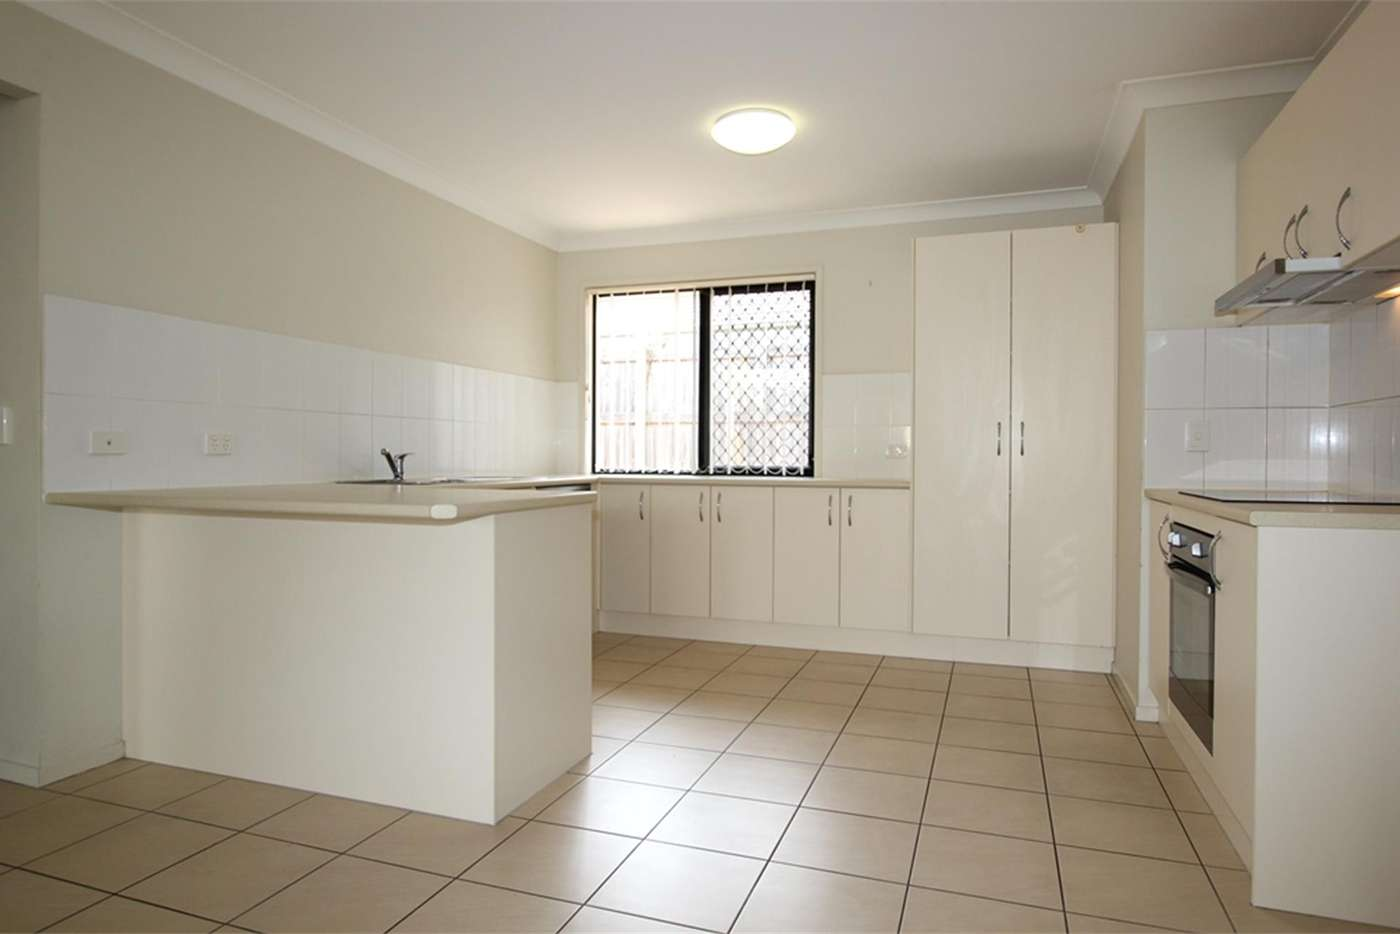 Sixth view of Homely house listing, 5 Kolora St, Marsden QLD 4132